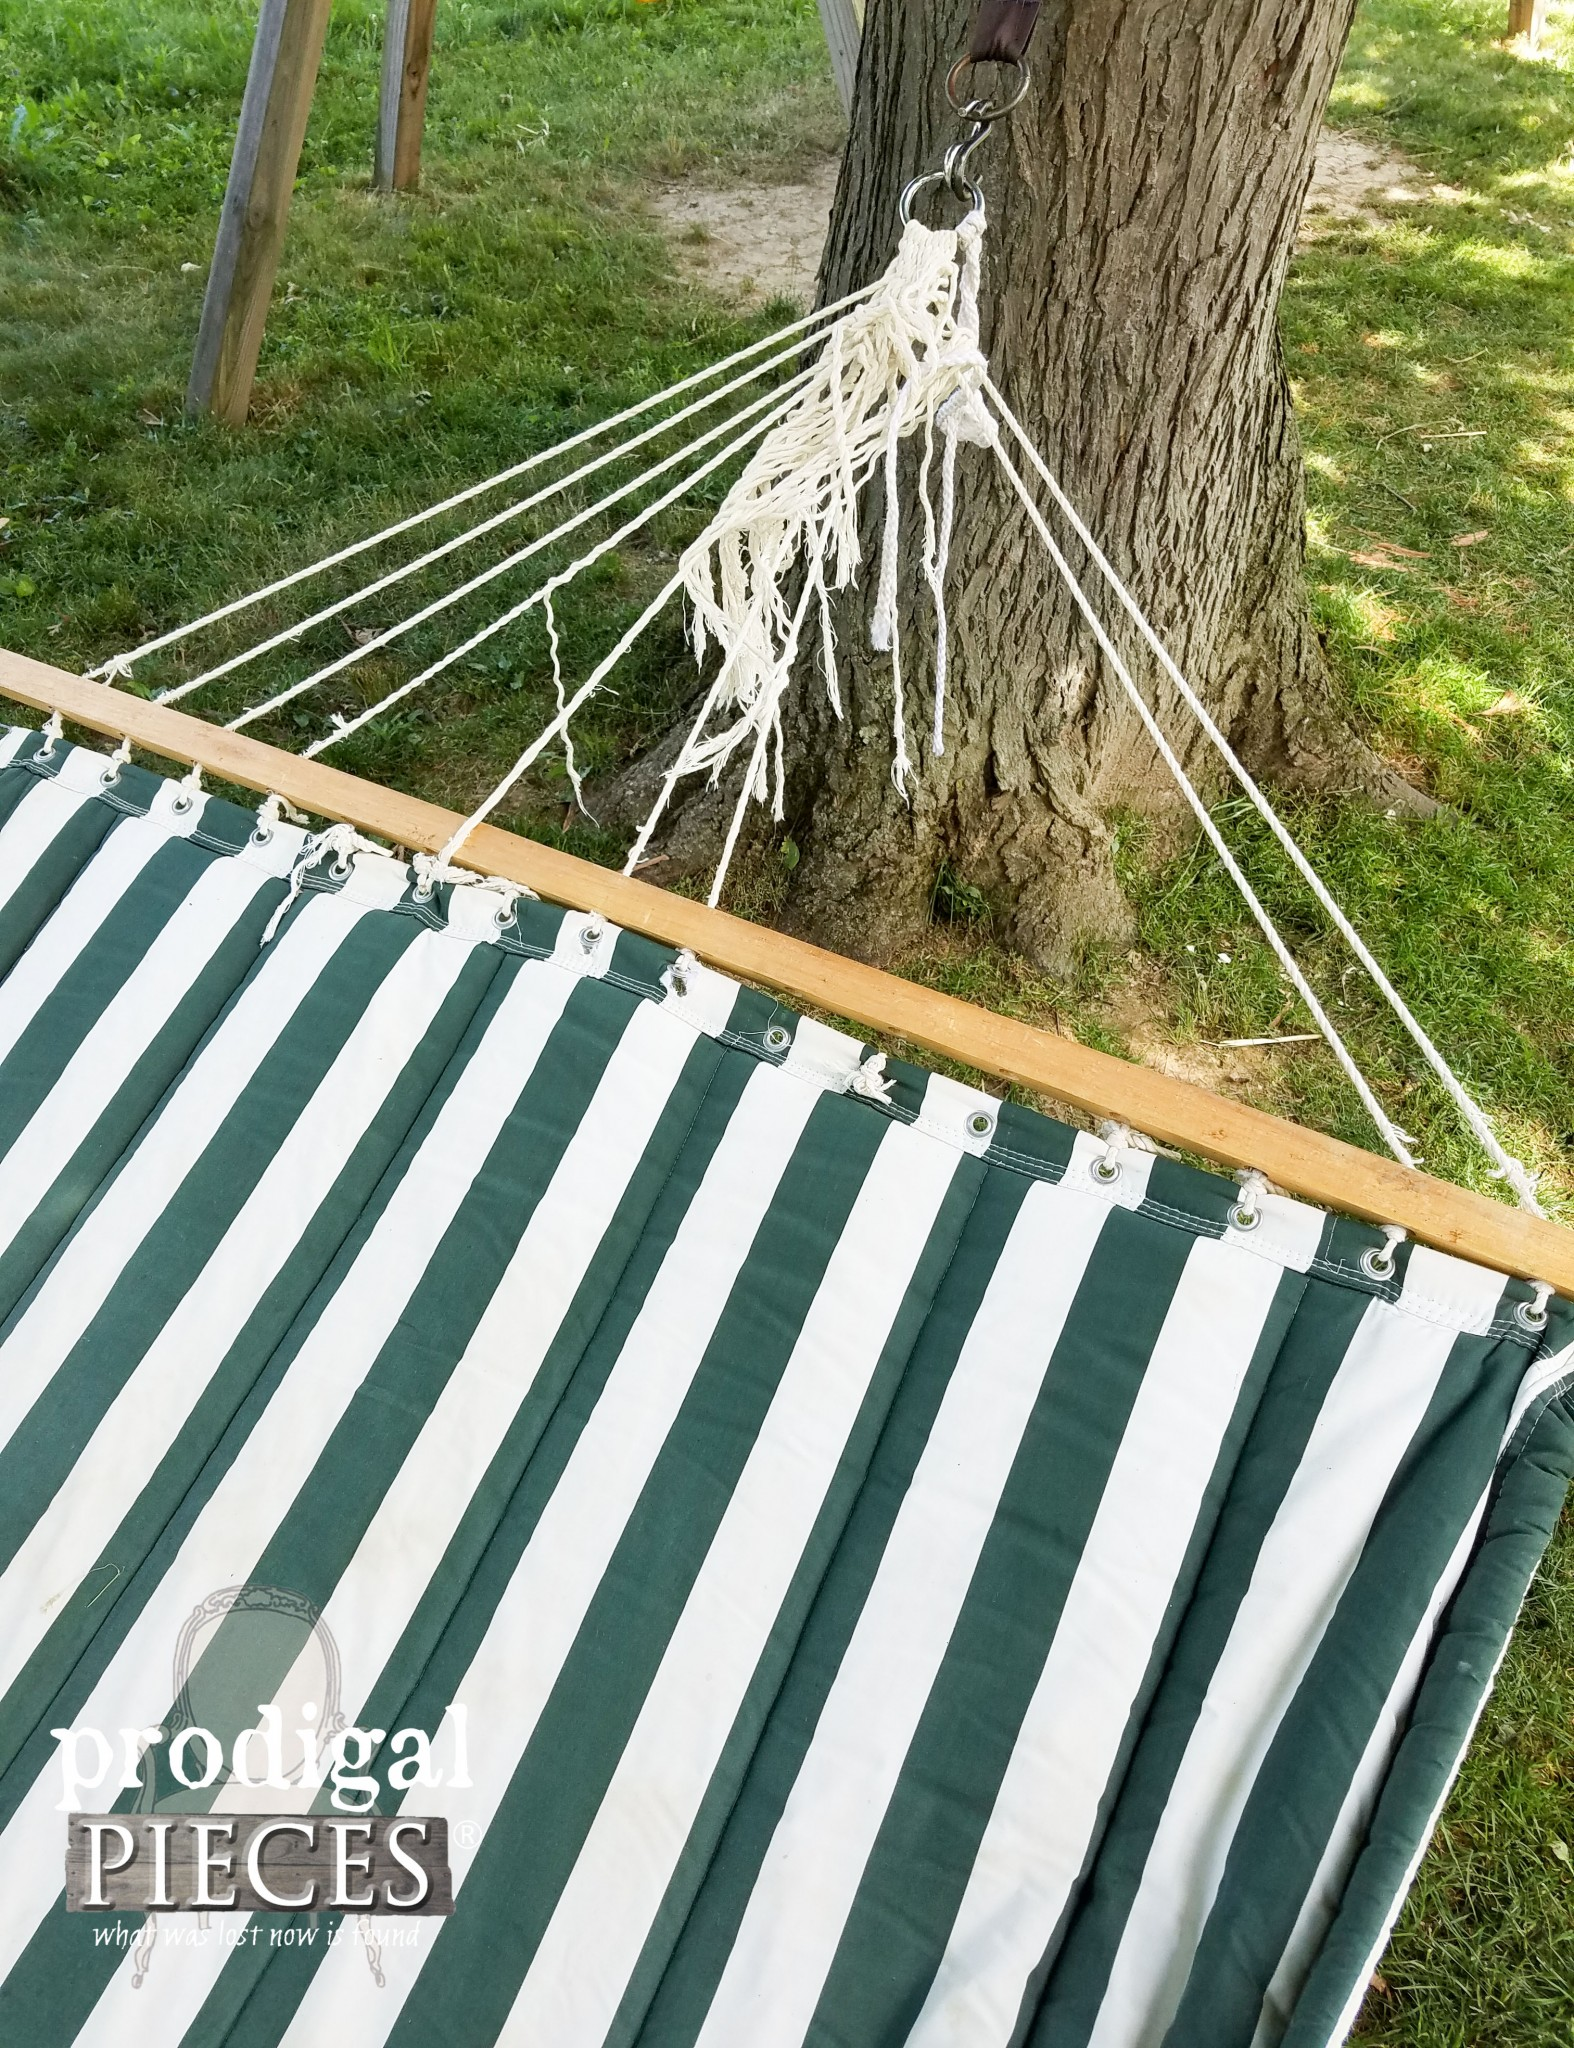 Damaged Outdoor Hammock | Prodigal Pieces | www.prodigalpieces.com